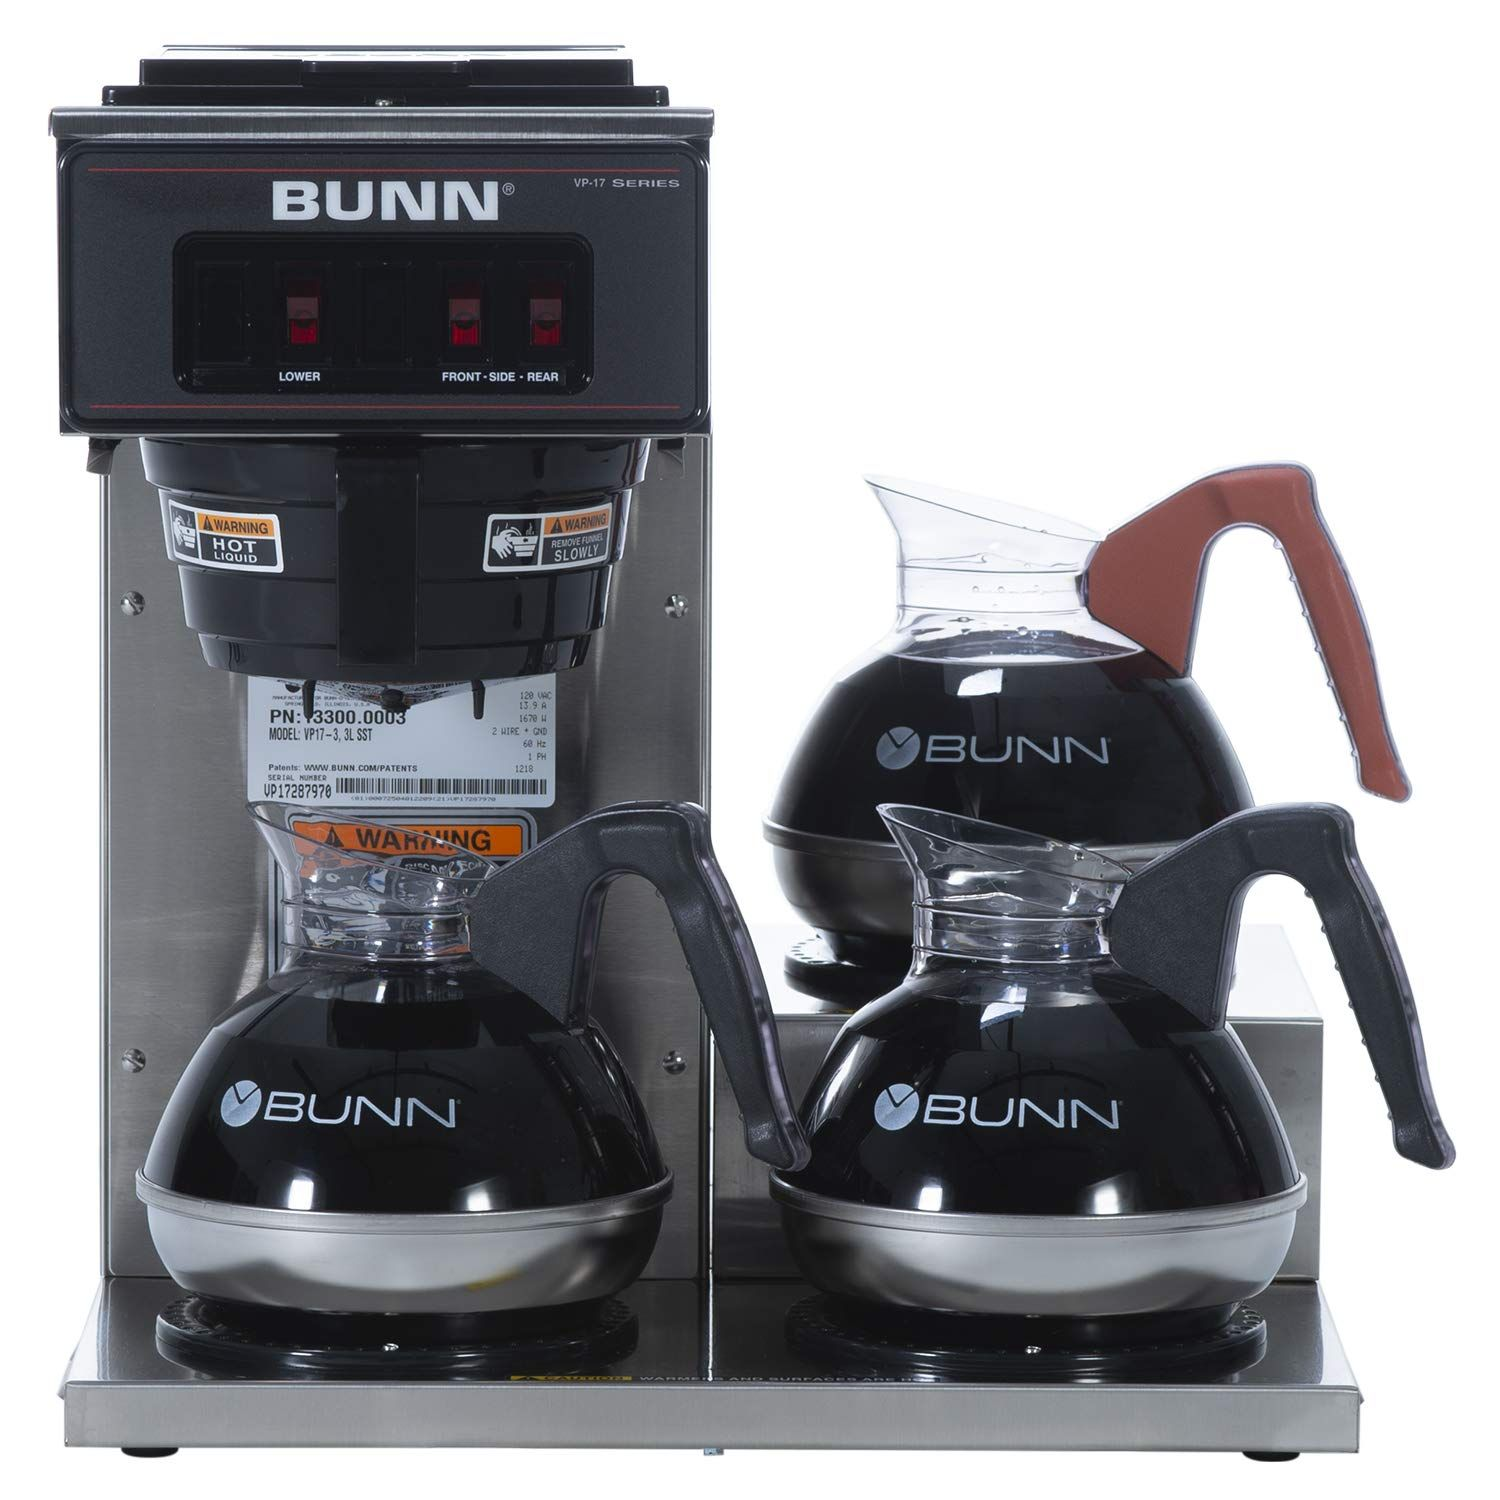 Pin on Espresso Machines and Coffee Makers